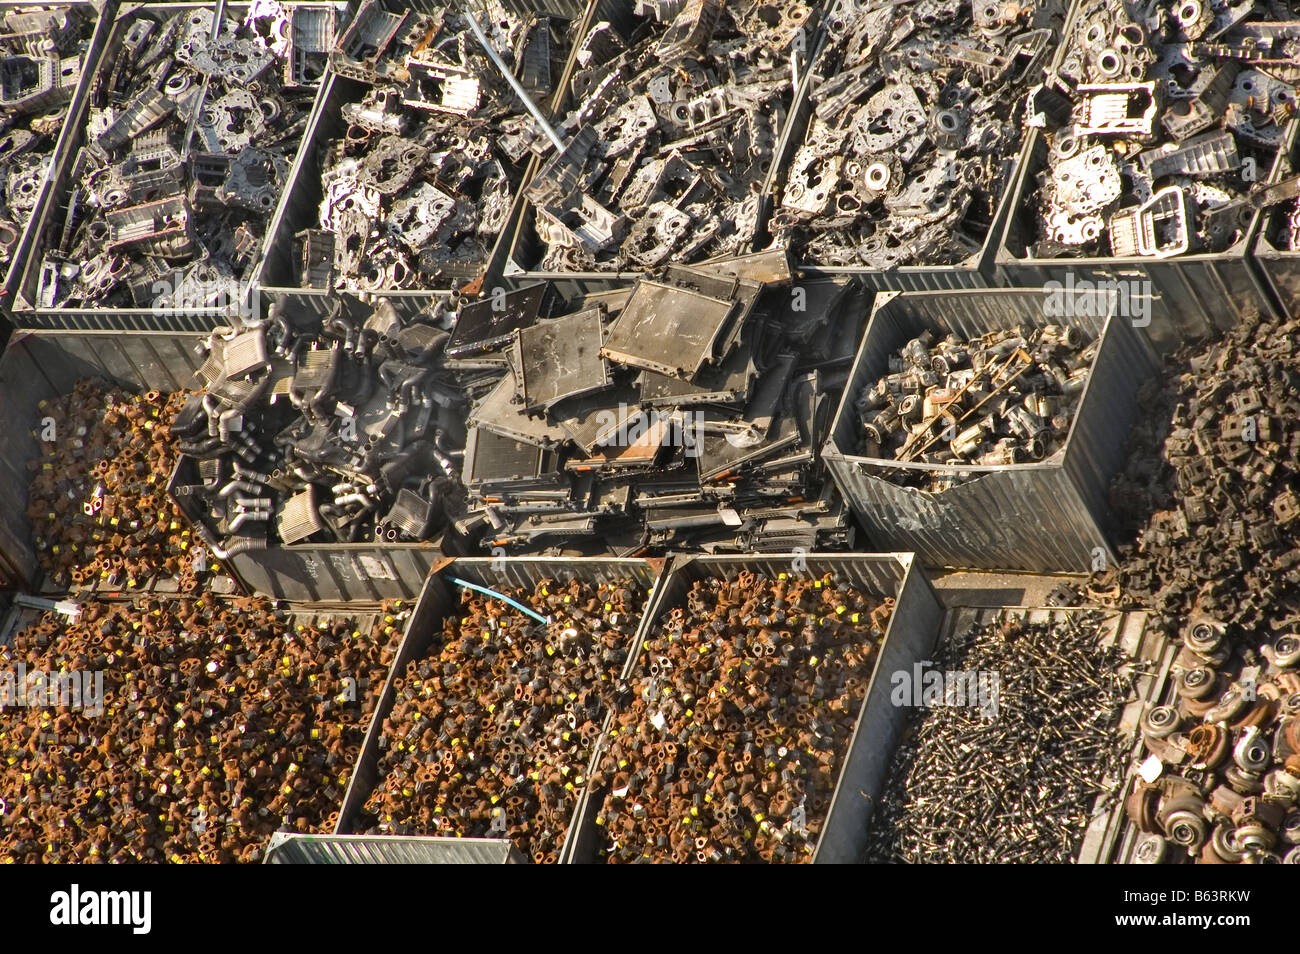 Recycling of auto parts in Bangkok Thailand scrap merchants - Stock Image